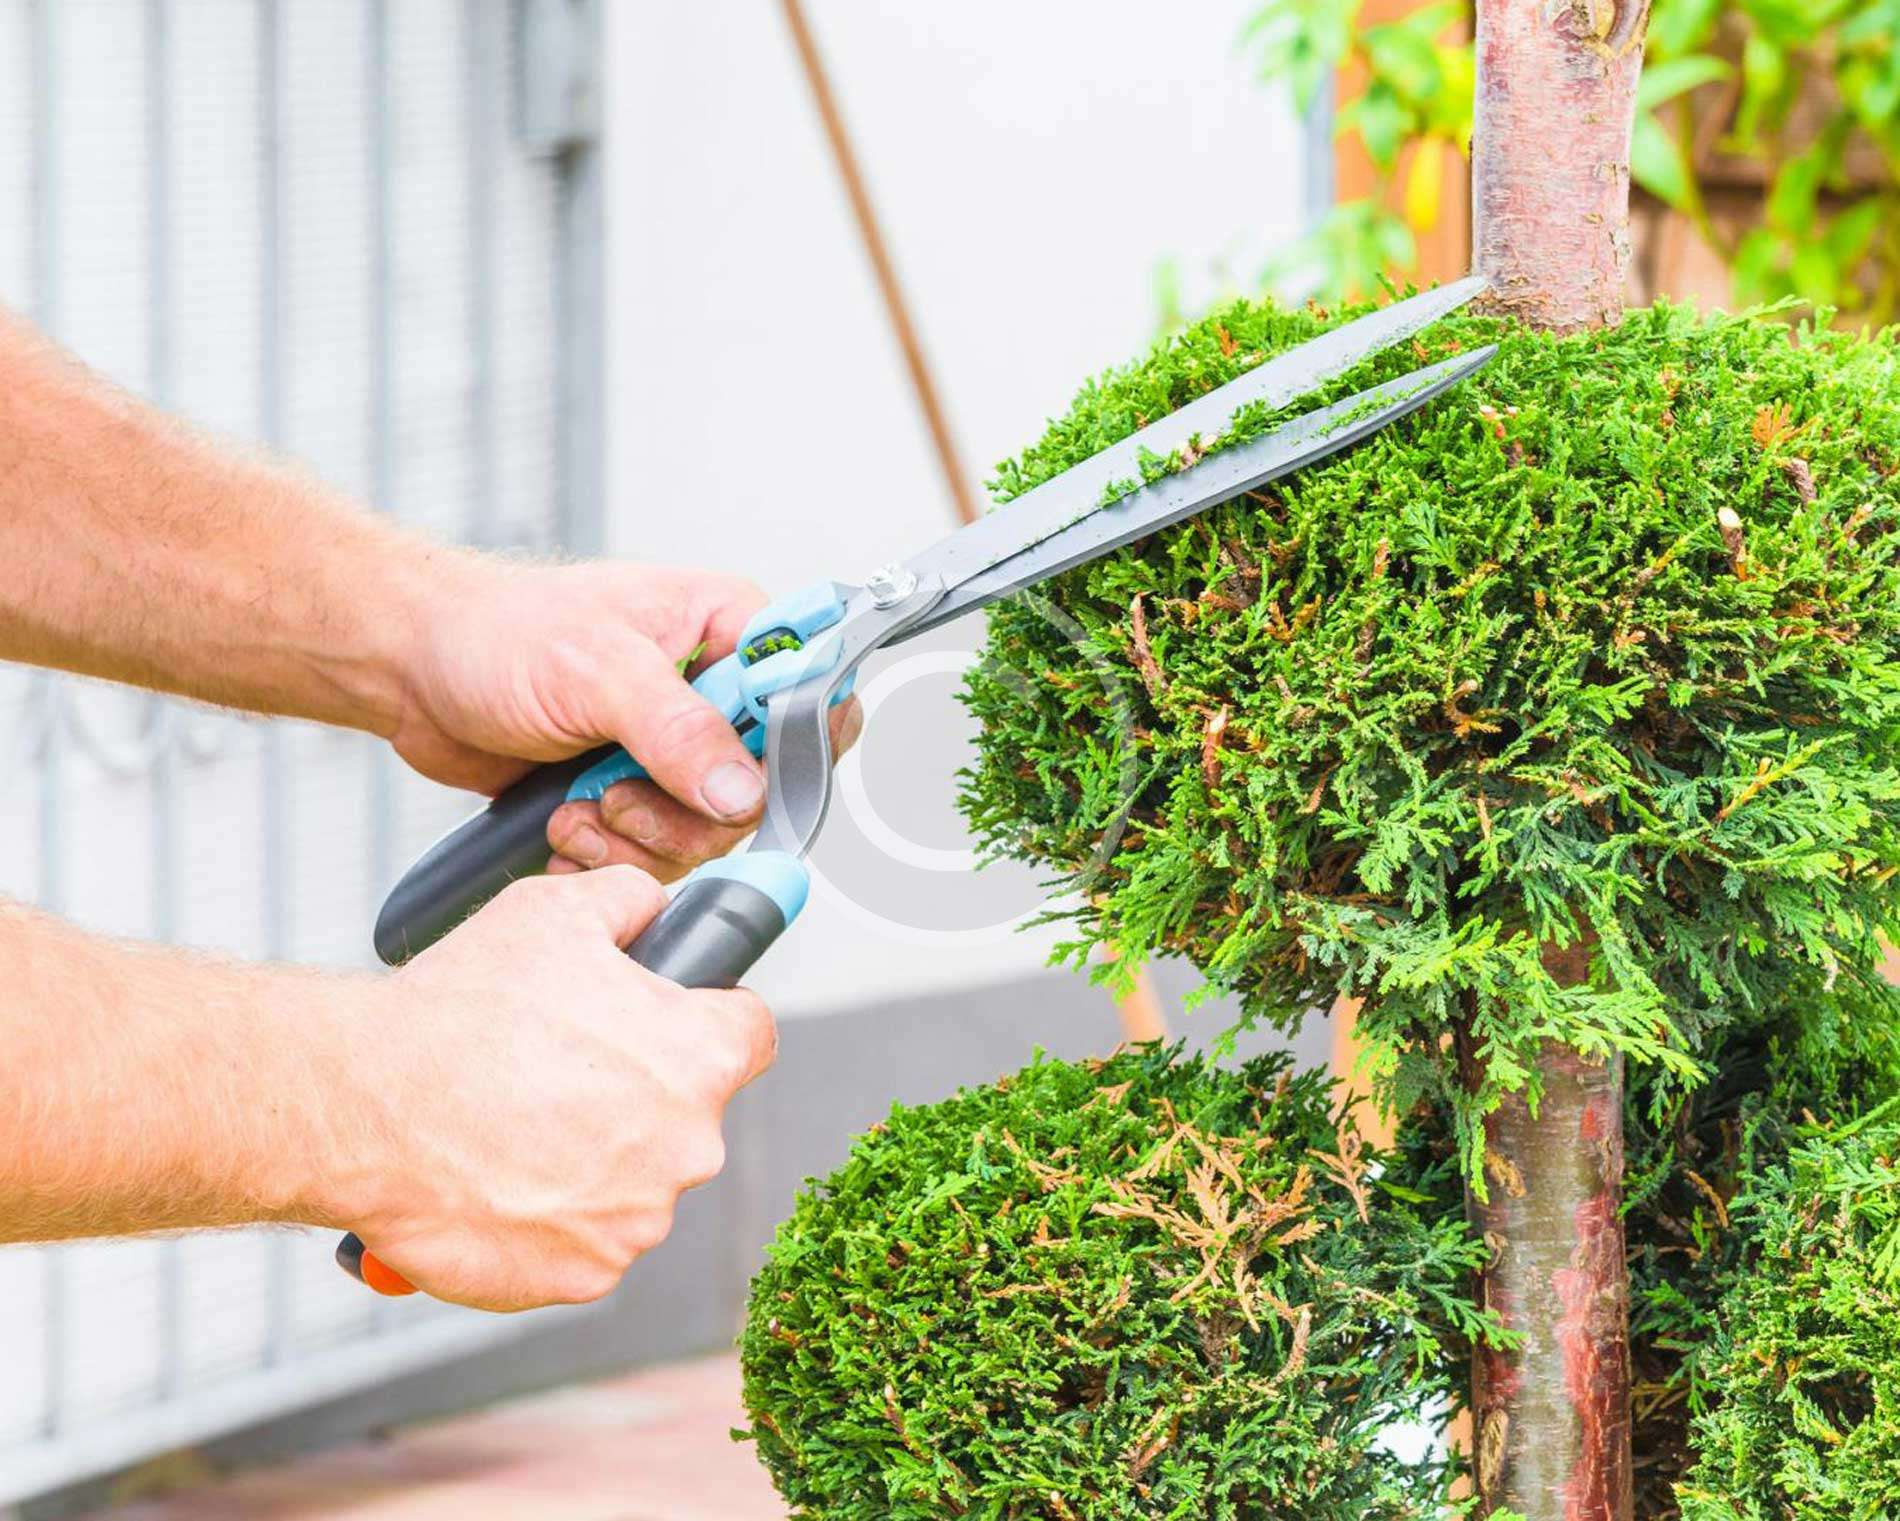 Proven Fact: Gardening Helps Immune System